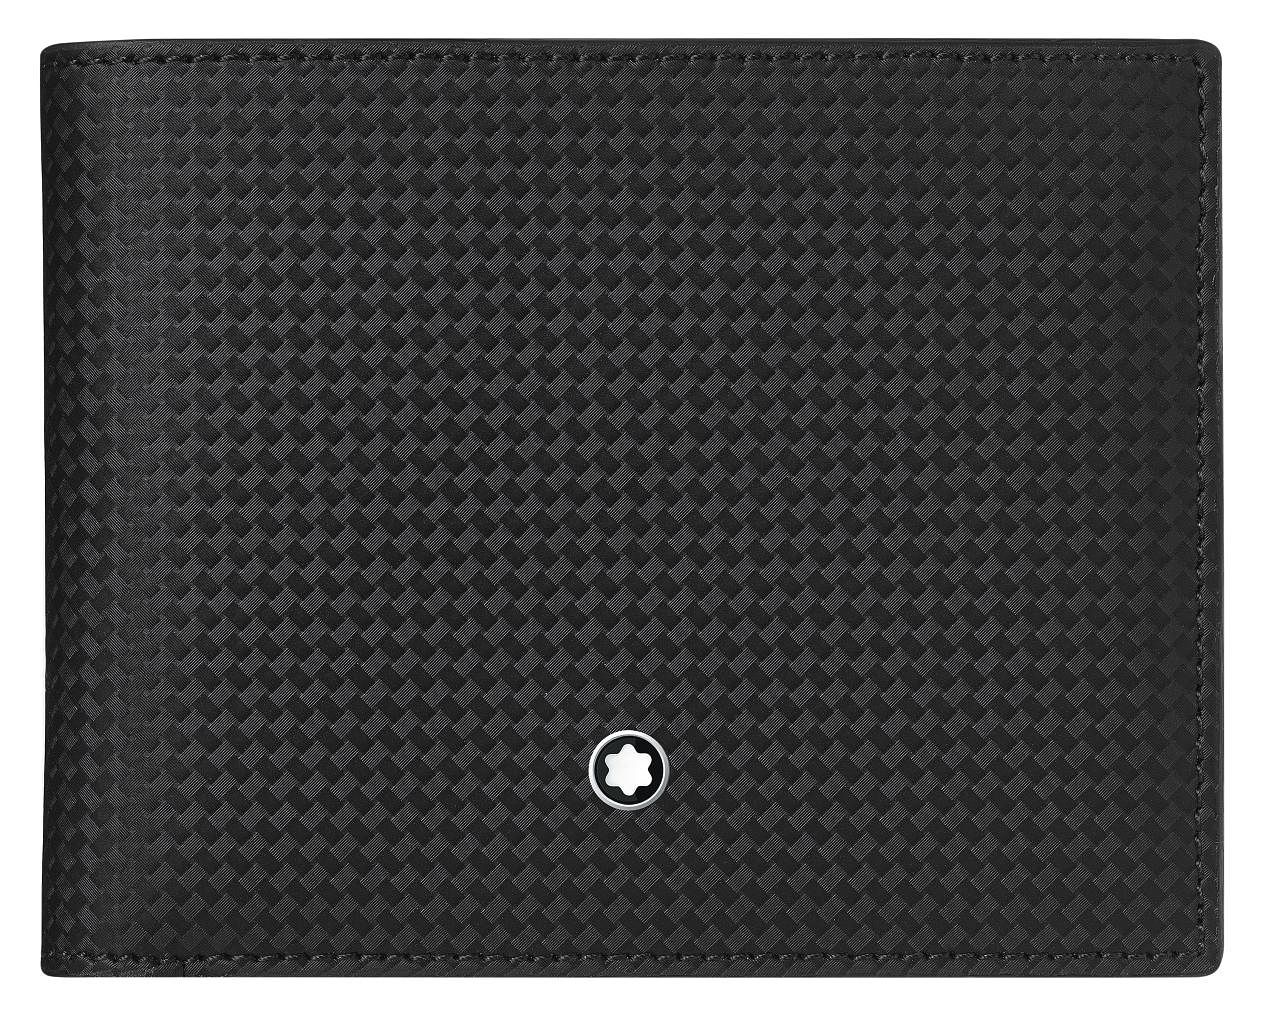 Montblanc Extreme 2.0 Black Leather Wallet - Product number 4250613